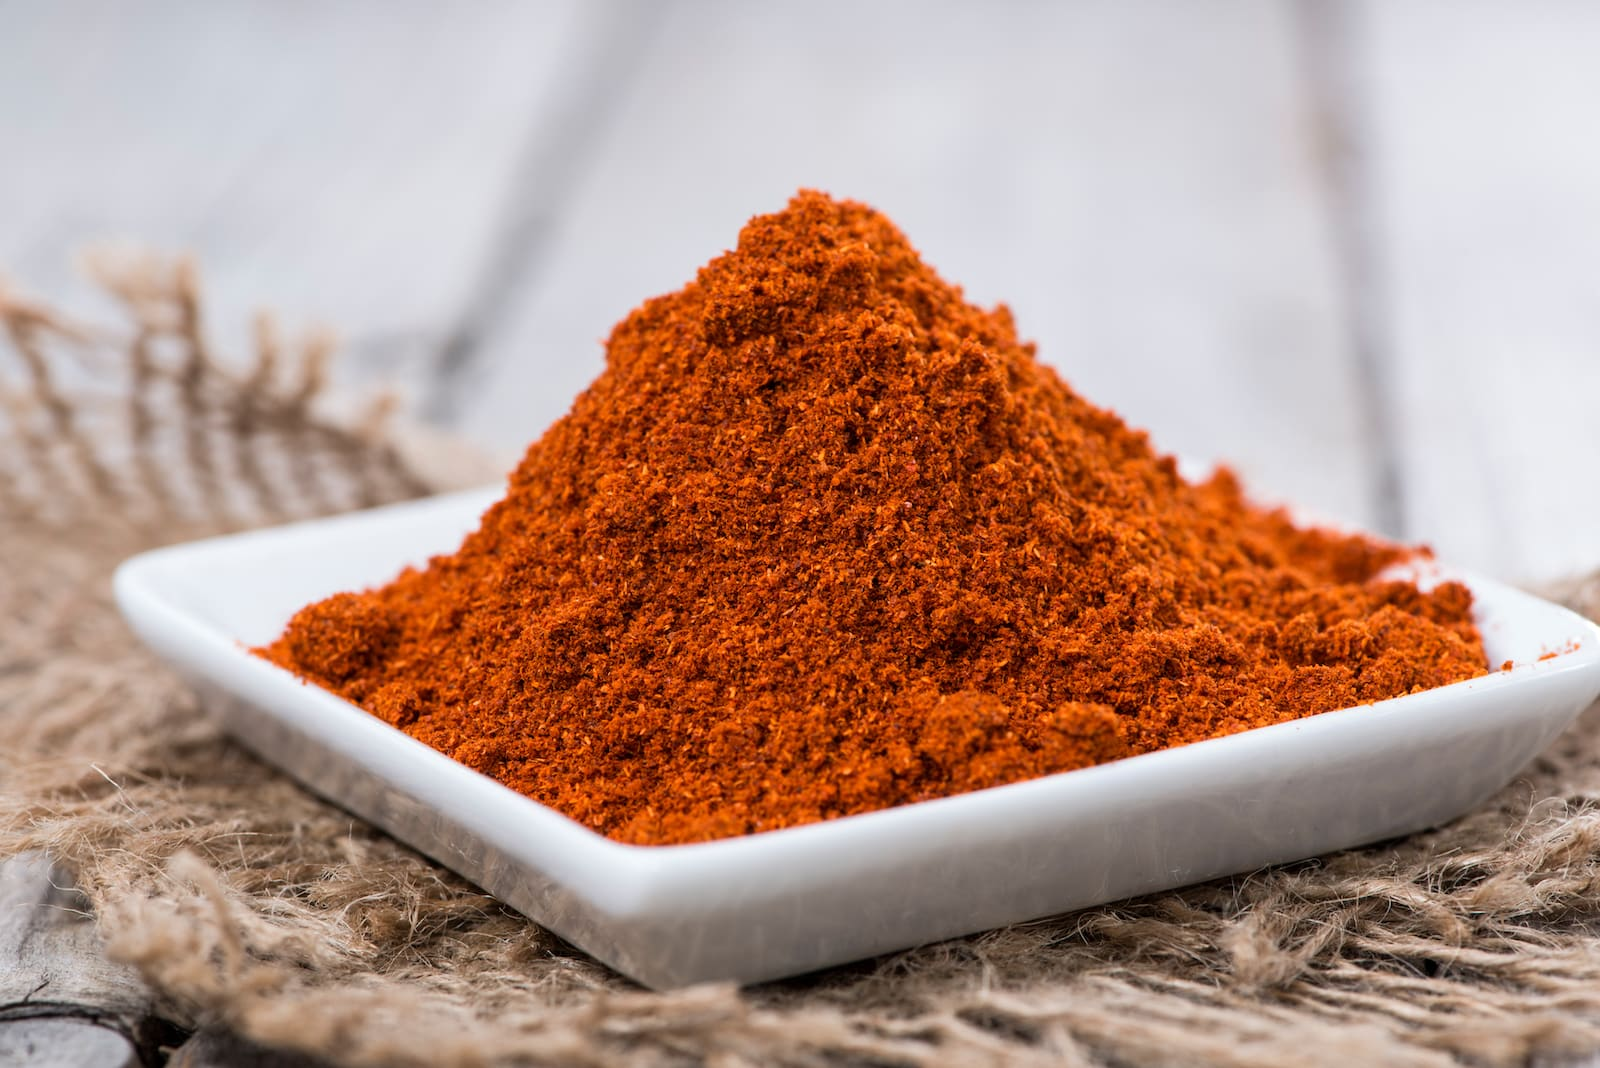 Is Paprika Spicy?